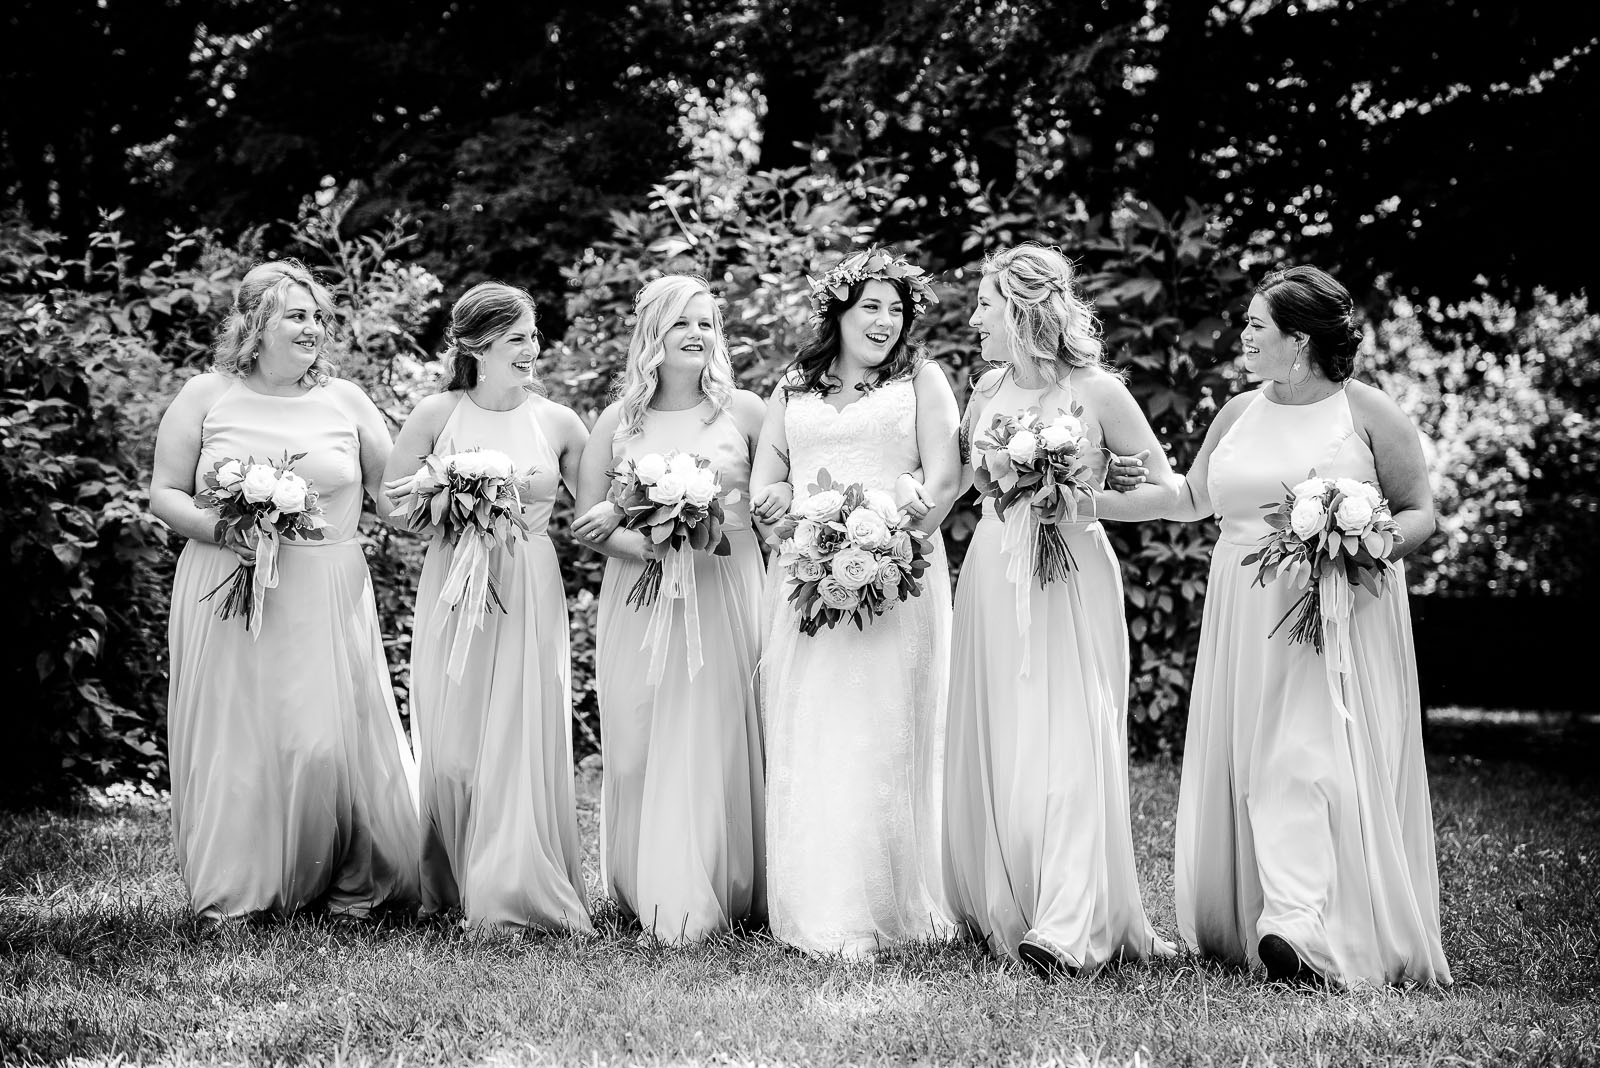 Eric_and_Christy_Photography_Blog_Wedding_Keara&Andy-26